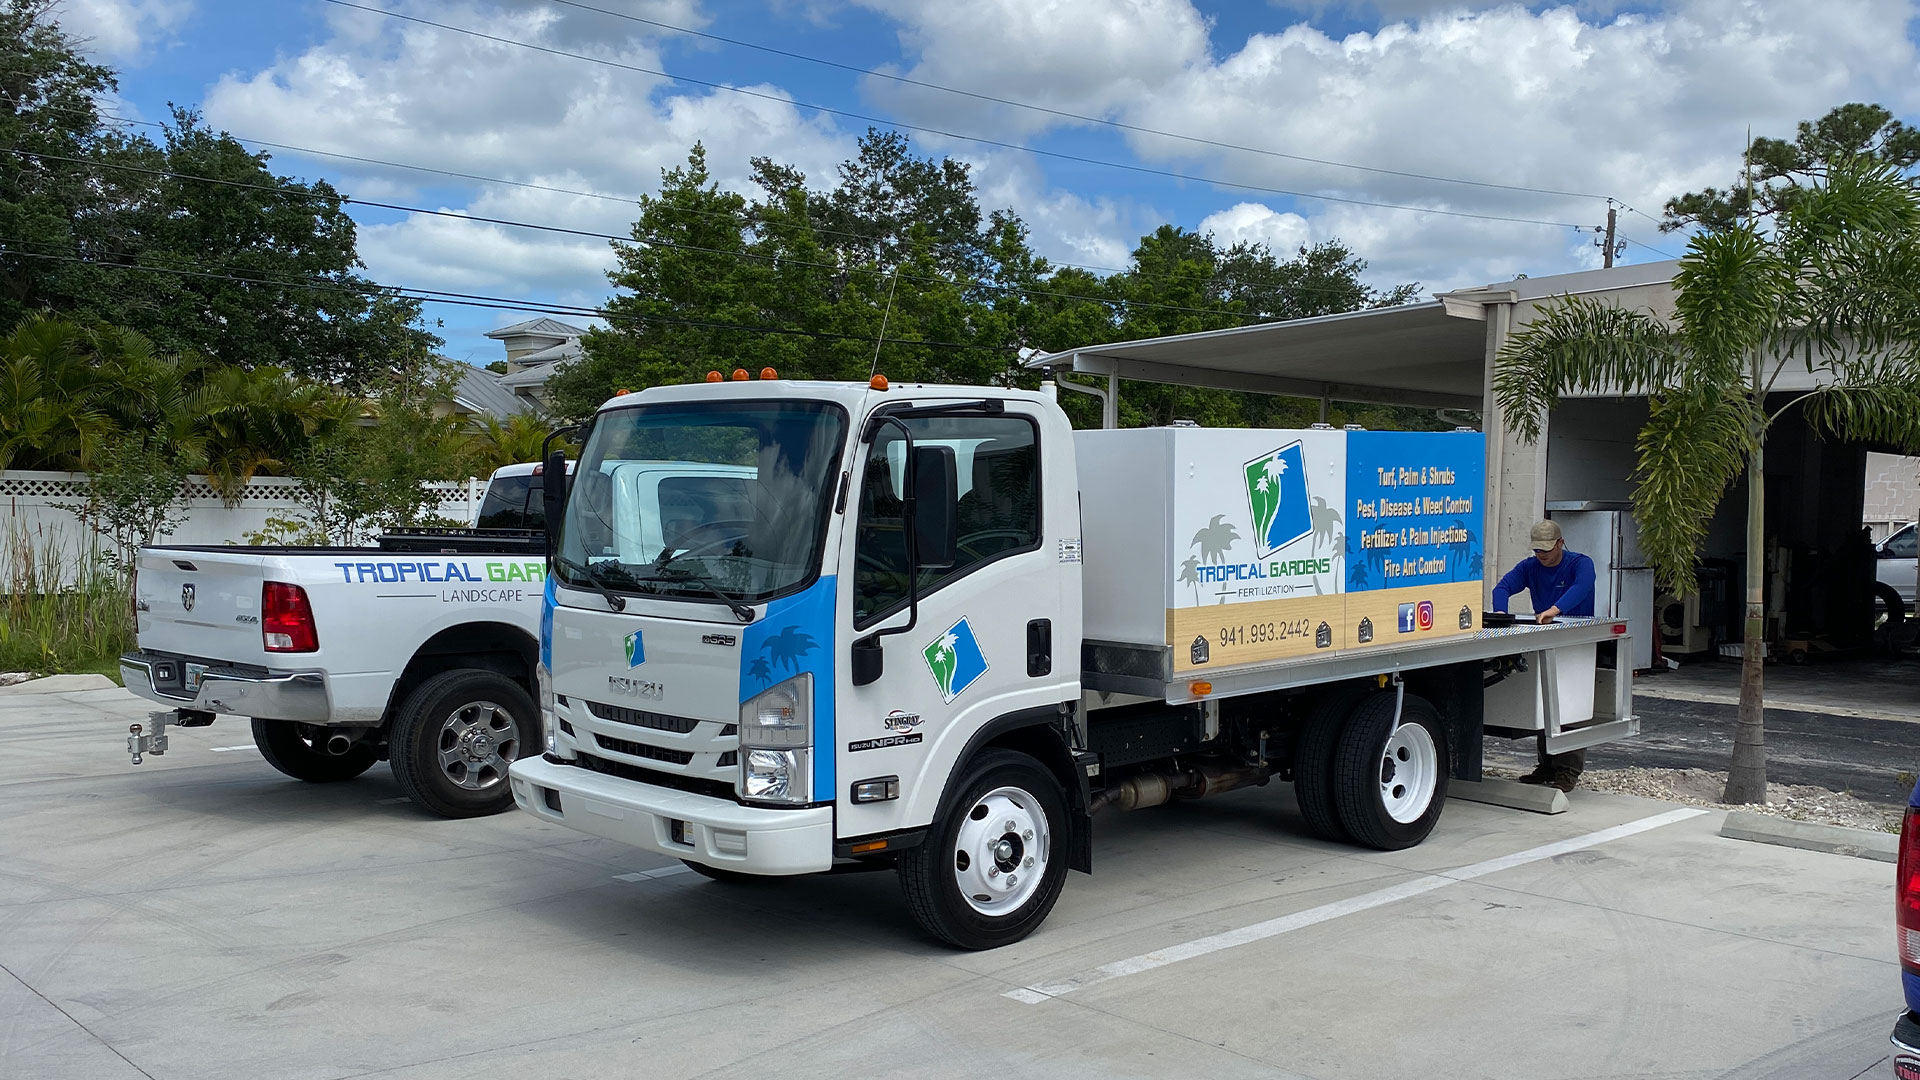 Tropical Gardens Landscape fertilizer truck and maintenance truck parked in front of our building in Sarasota, FL.